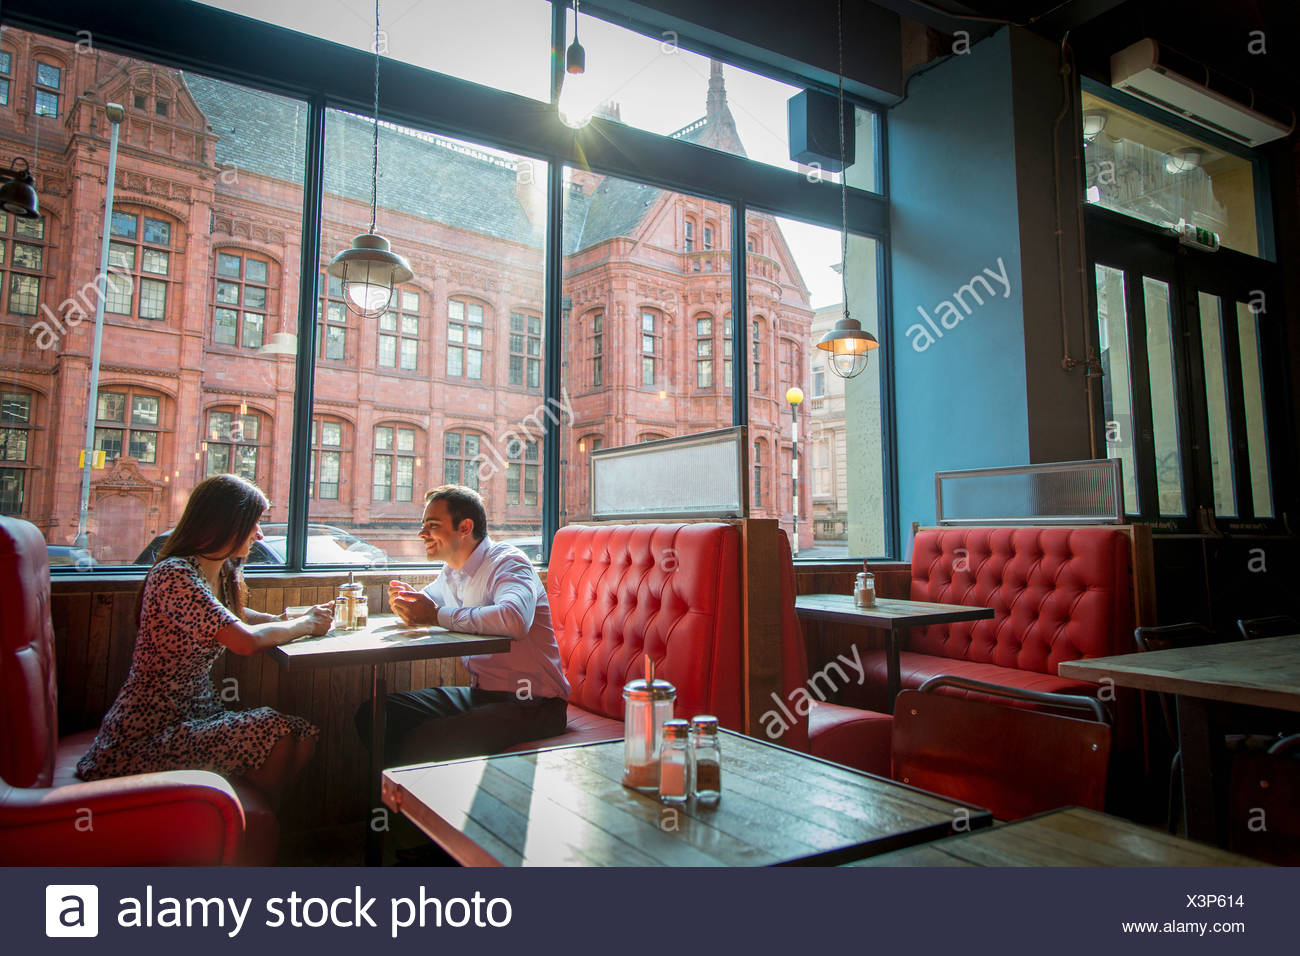 Couple sitting in restaurant booth Photo Stock